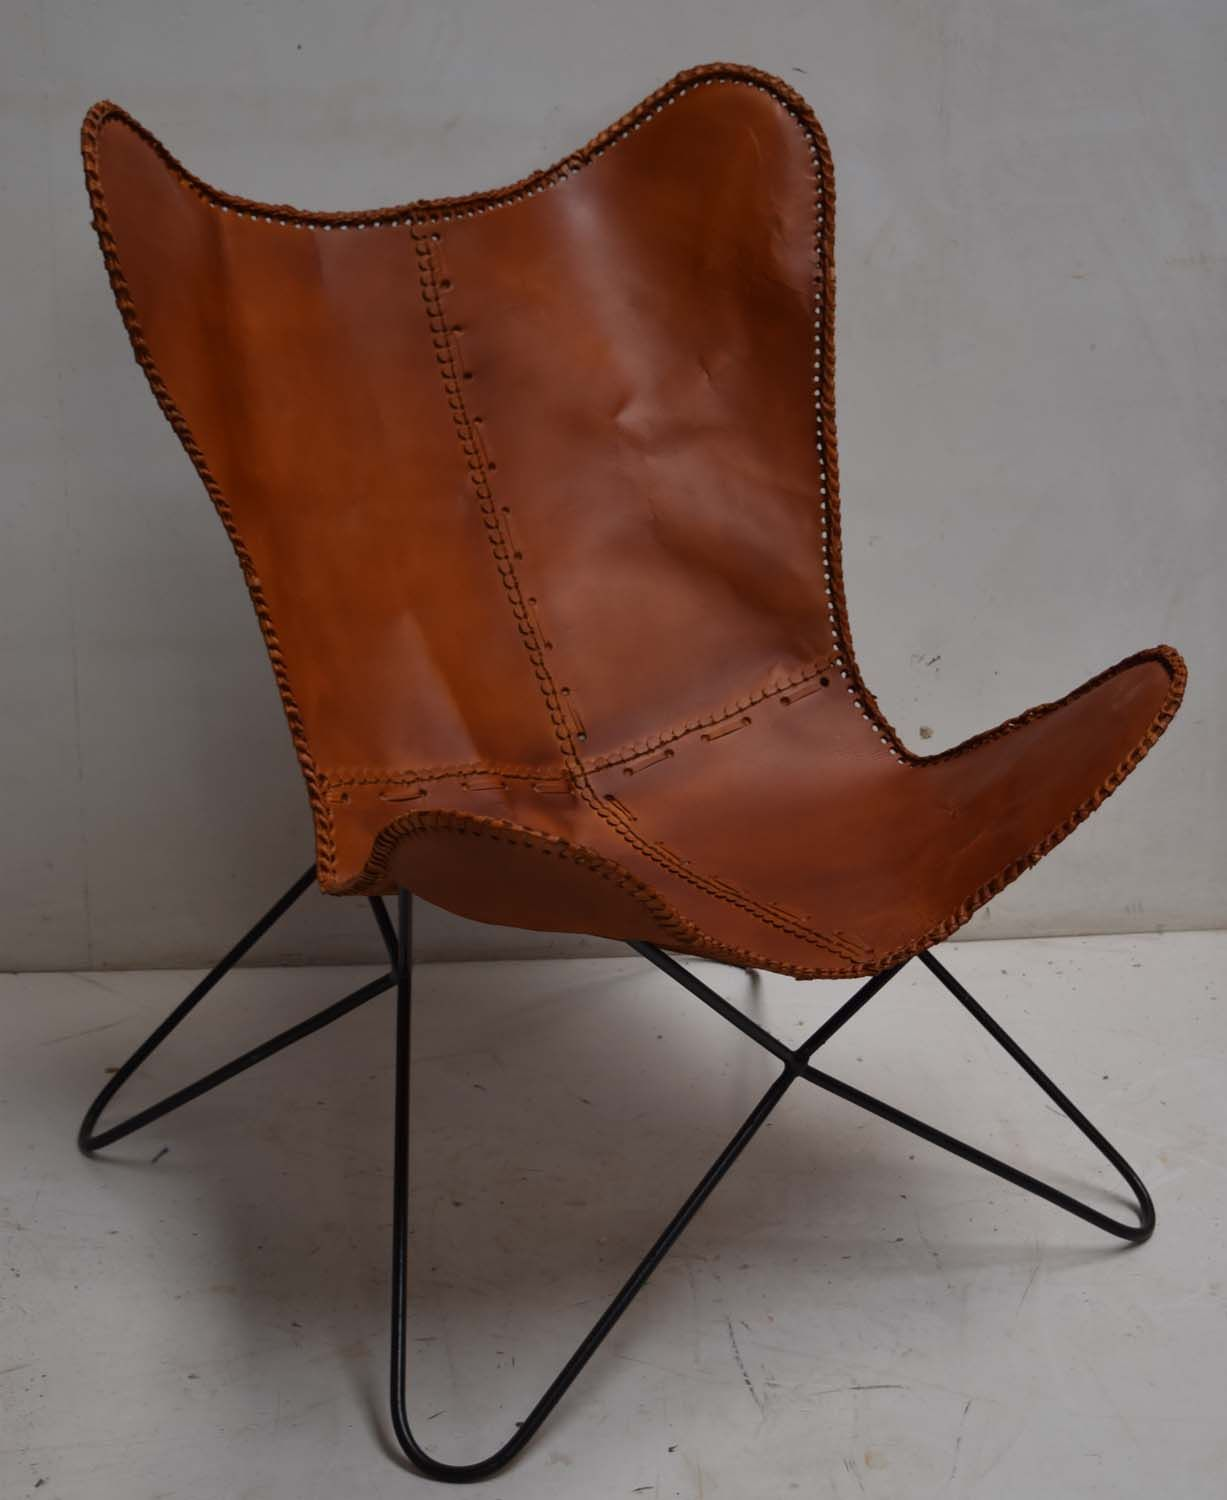 Factory caster vintage industrial furniture - Vintage Industrial Leather Butterfly Chair Industrial Loft Modern Furniture Factory Jodhpur India